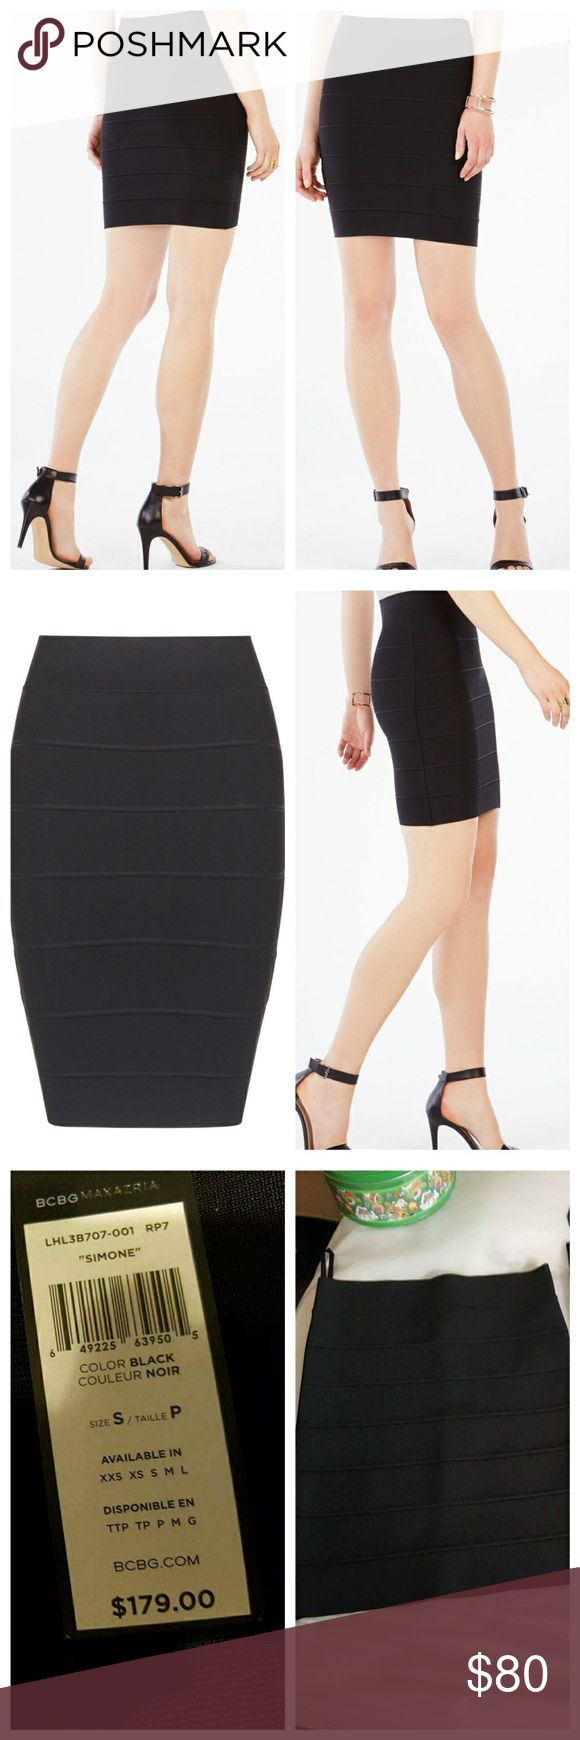 New Bcbg Maxazria Simone Textured Power Skirt New Bcbg Maxazria Simone textured power skirt   This powerfully confident skirt makes it easy to create chic, sophisticated looks for day or night.  Sits above waist. Elasticized waistband. Pencil. Hits above the knee. Horizontal piping throughout. Self: Rayon, Nylon, Spandex. Machine Wash.  NEW WITH TAGS Size Small color Black   I do bundle and offers are welcome BCBGMaxAzria Skirts Pencil